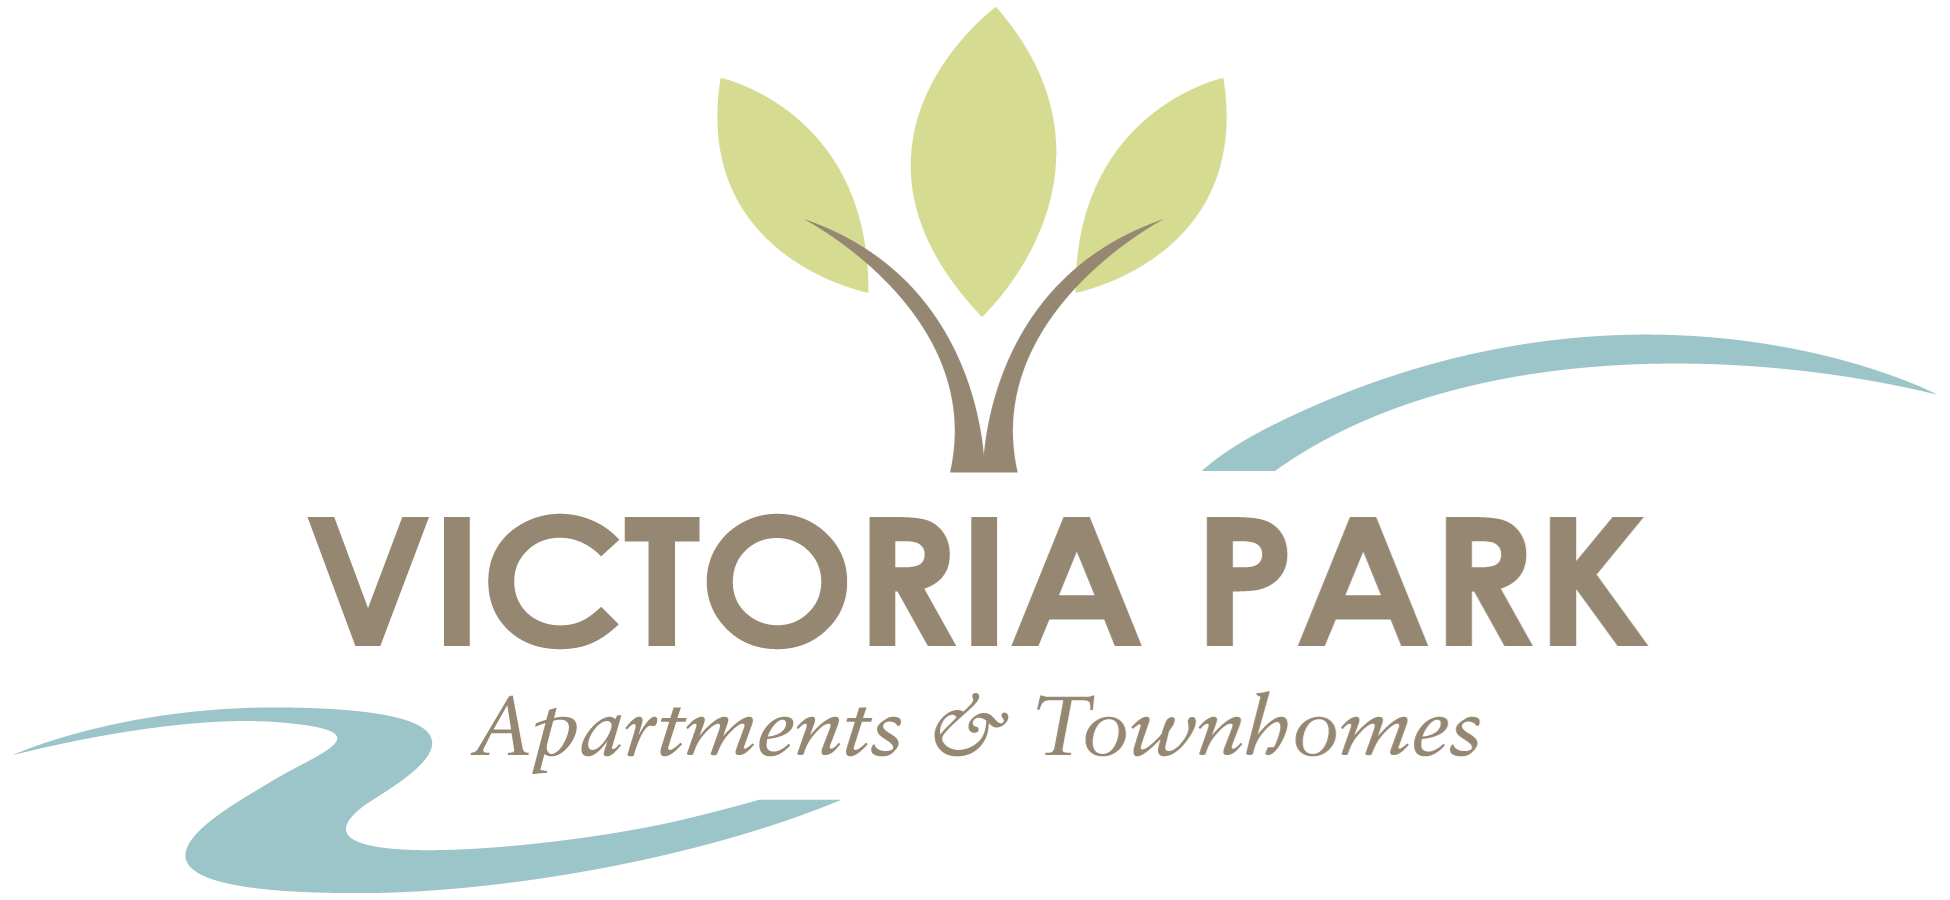 Victoria Park Apartments & Townhomes and V2 Apartments in St. Paul, MN